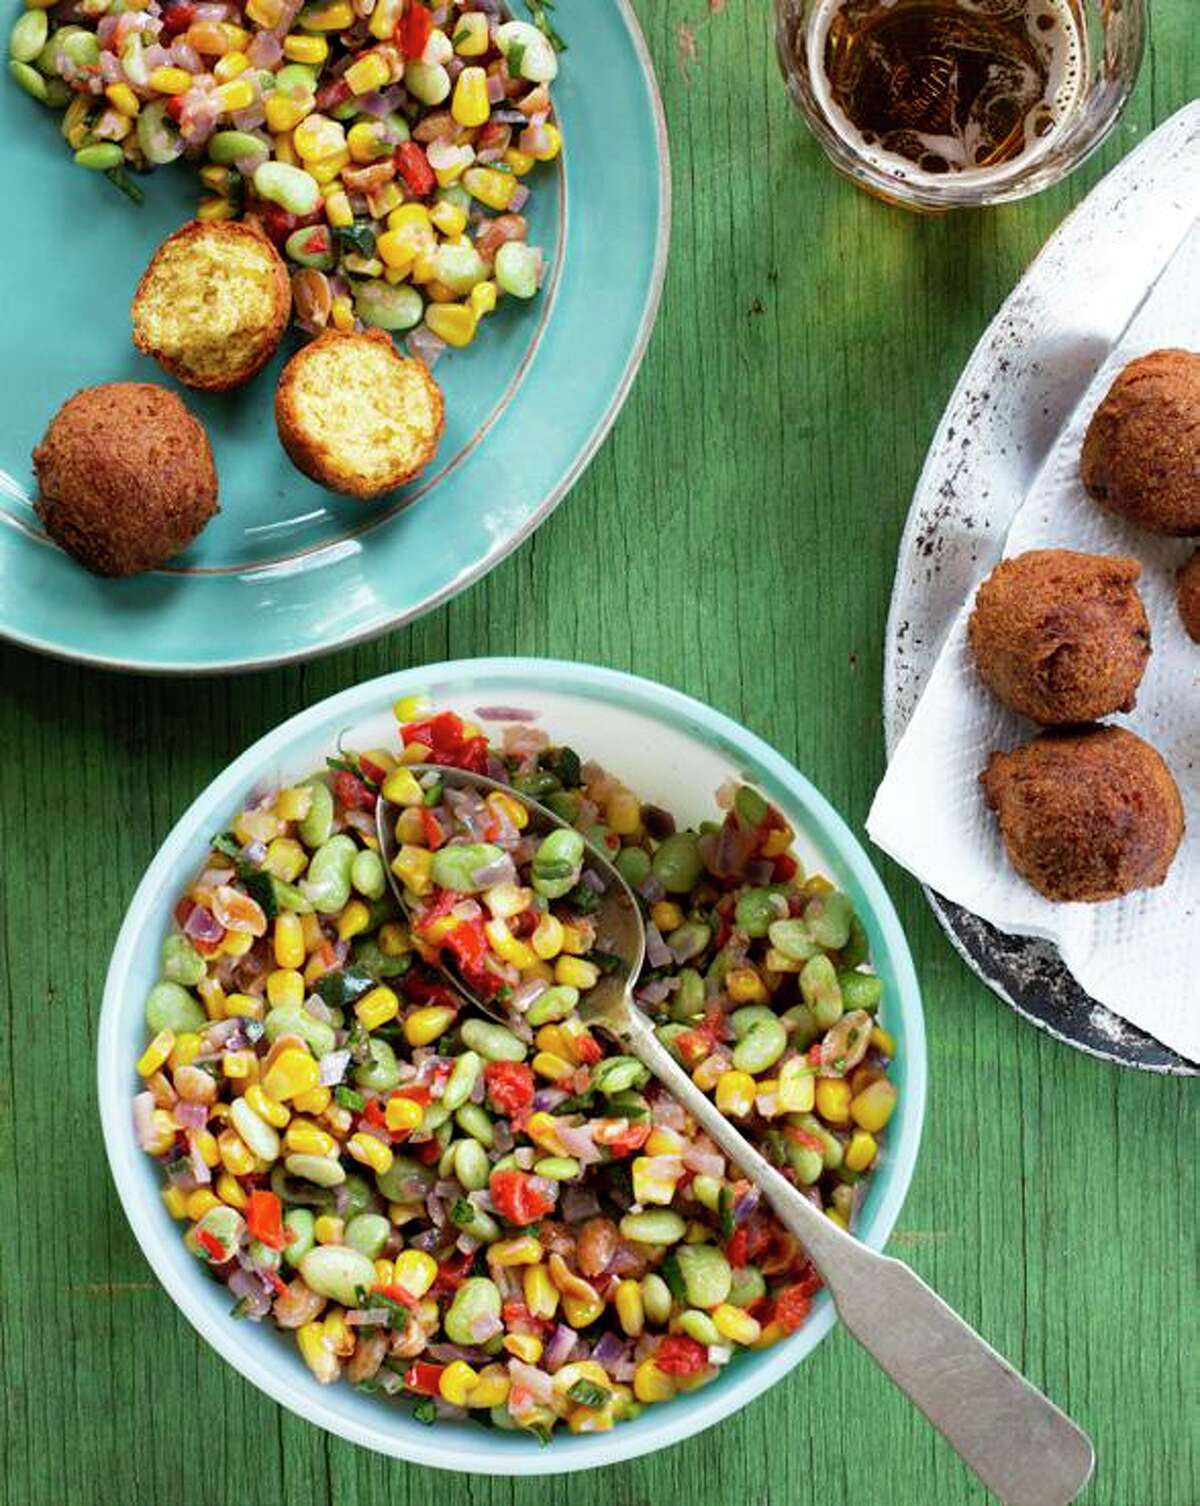 Hushpuppies with Peanut Succotash from Rodney Scott is among the recipes in